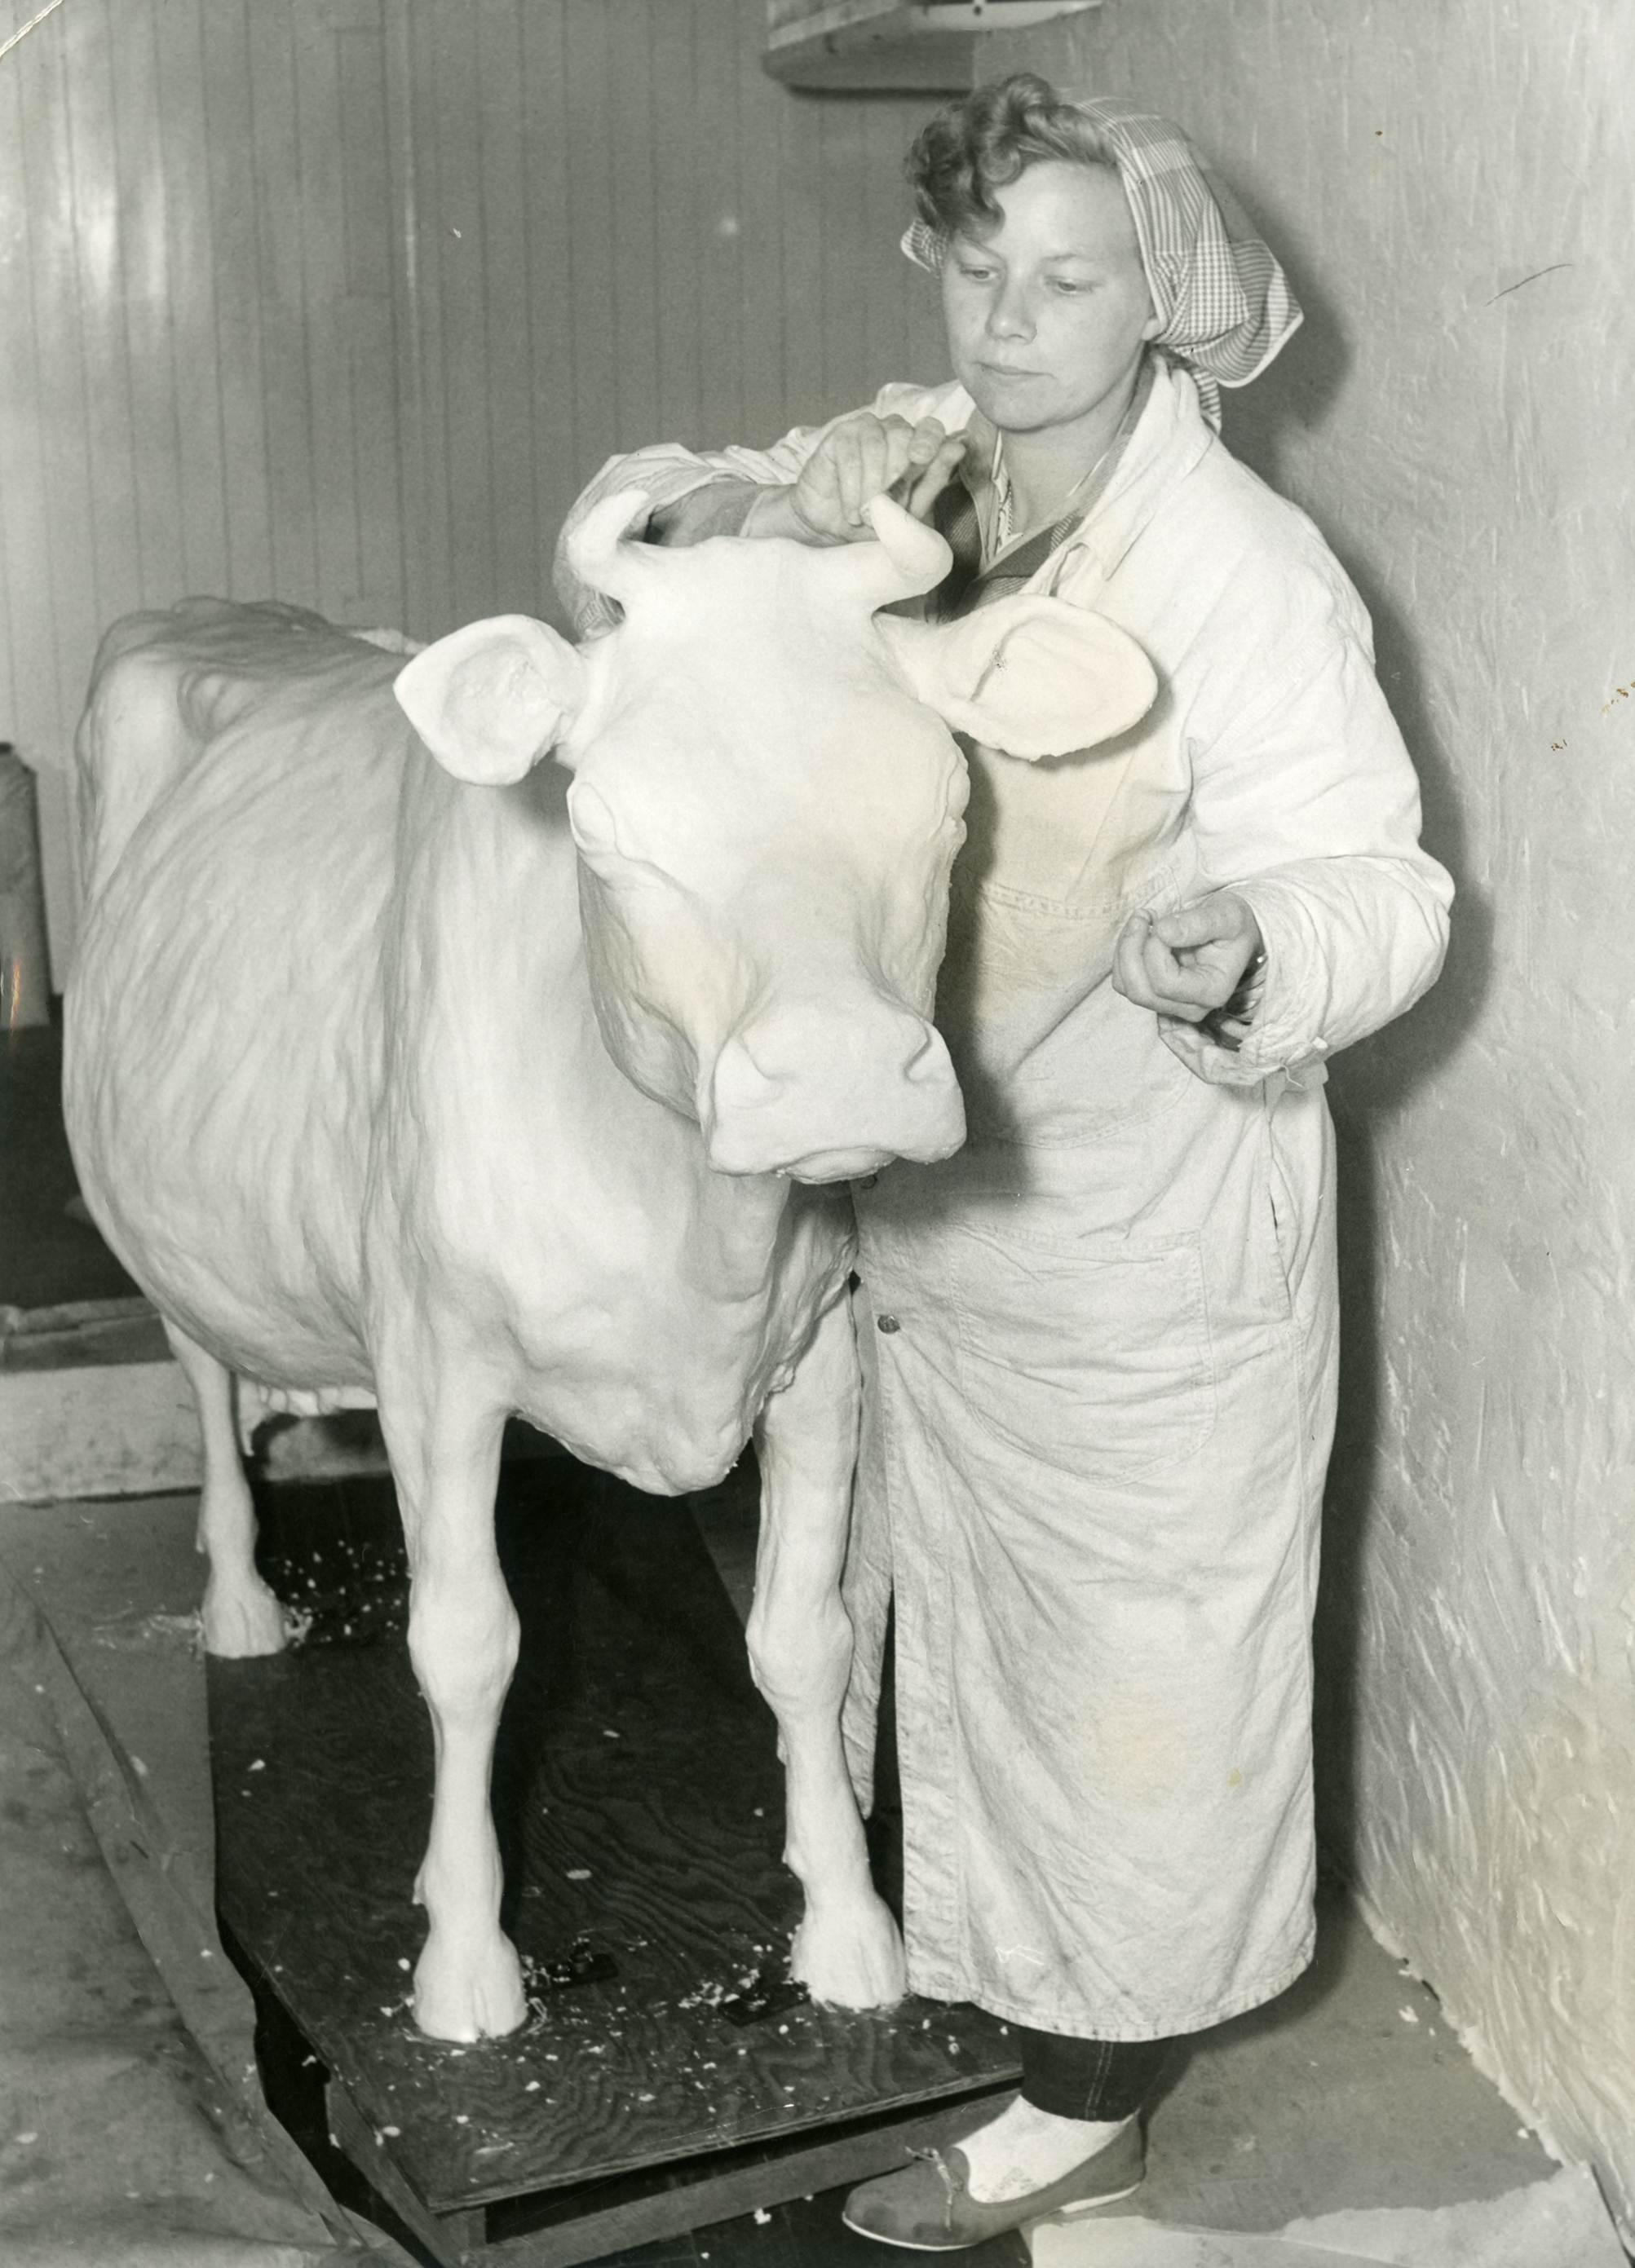 Image 003, First Butter Cow